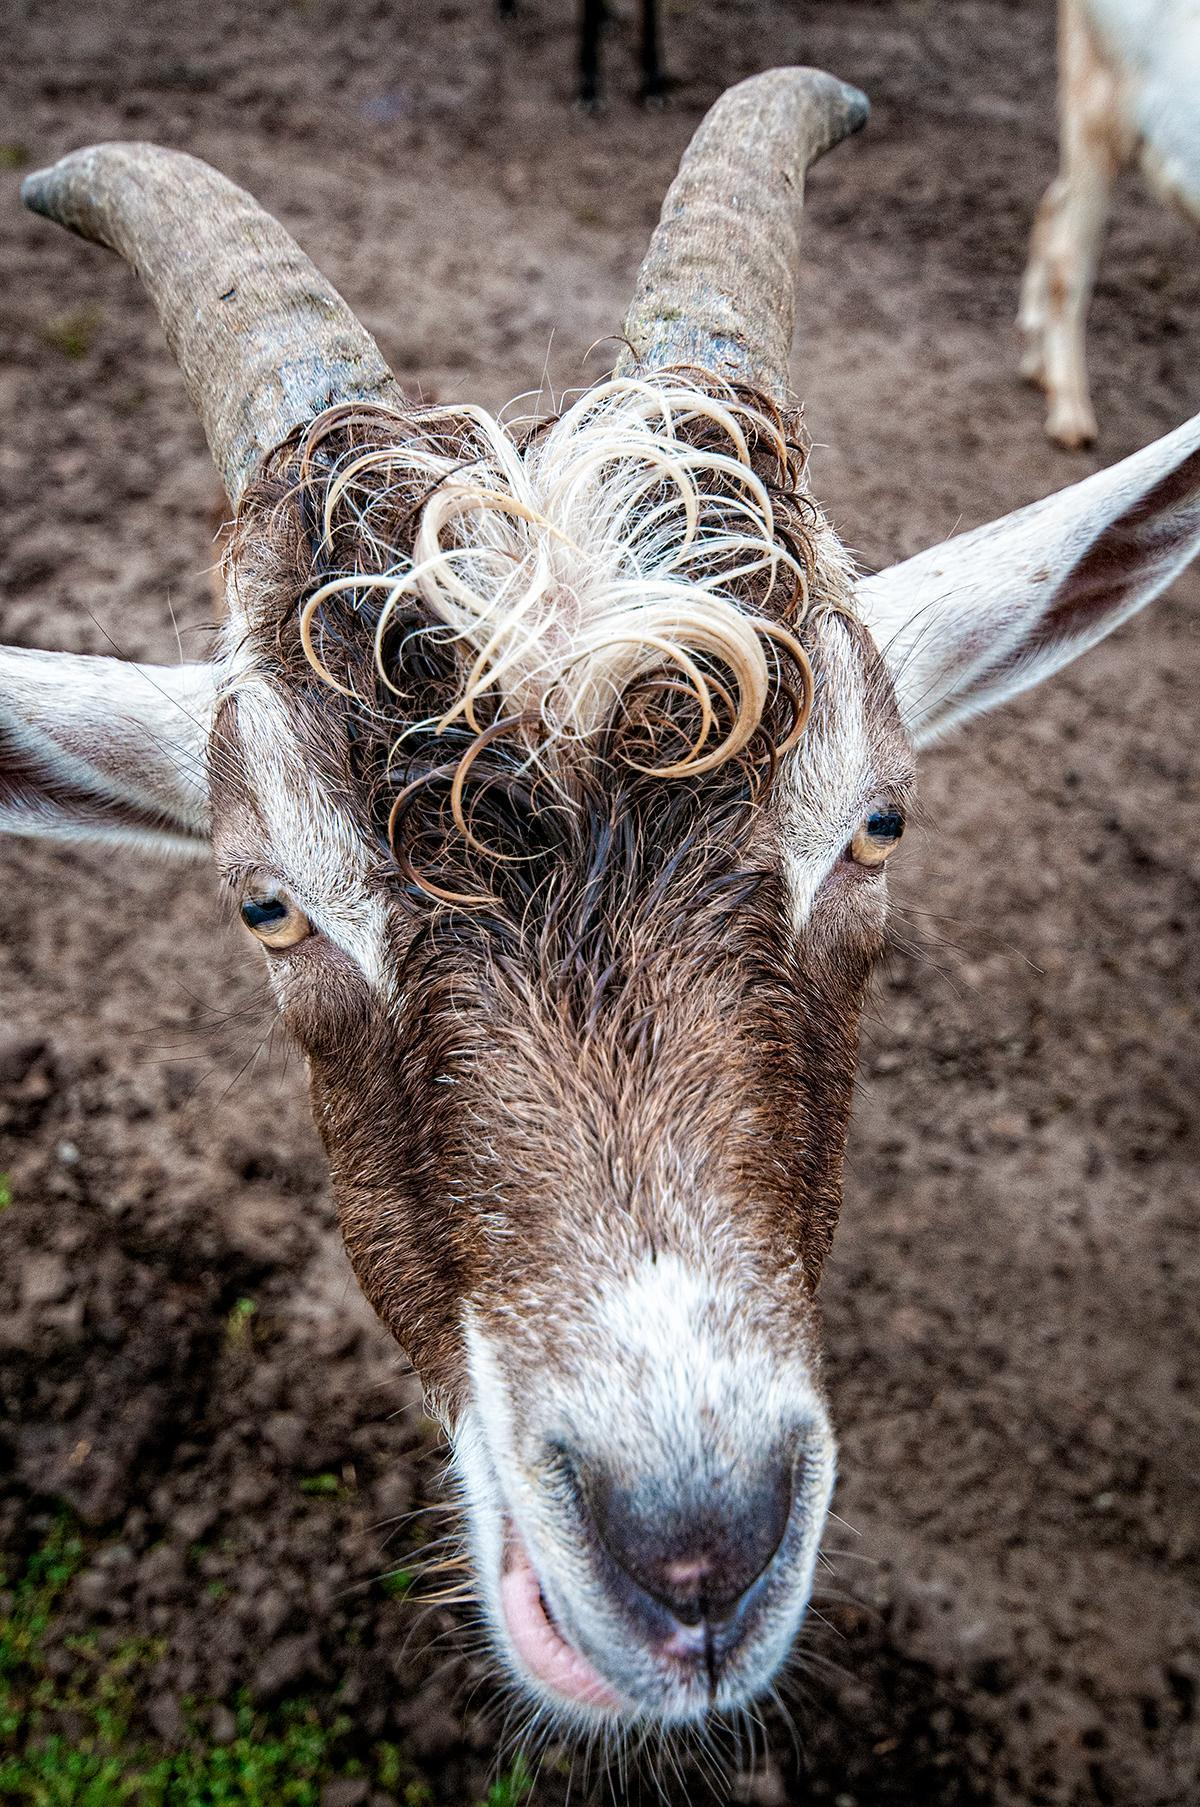 We love this goat's curly locks...